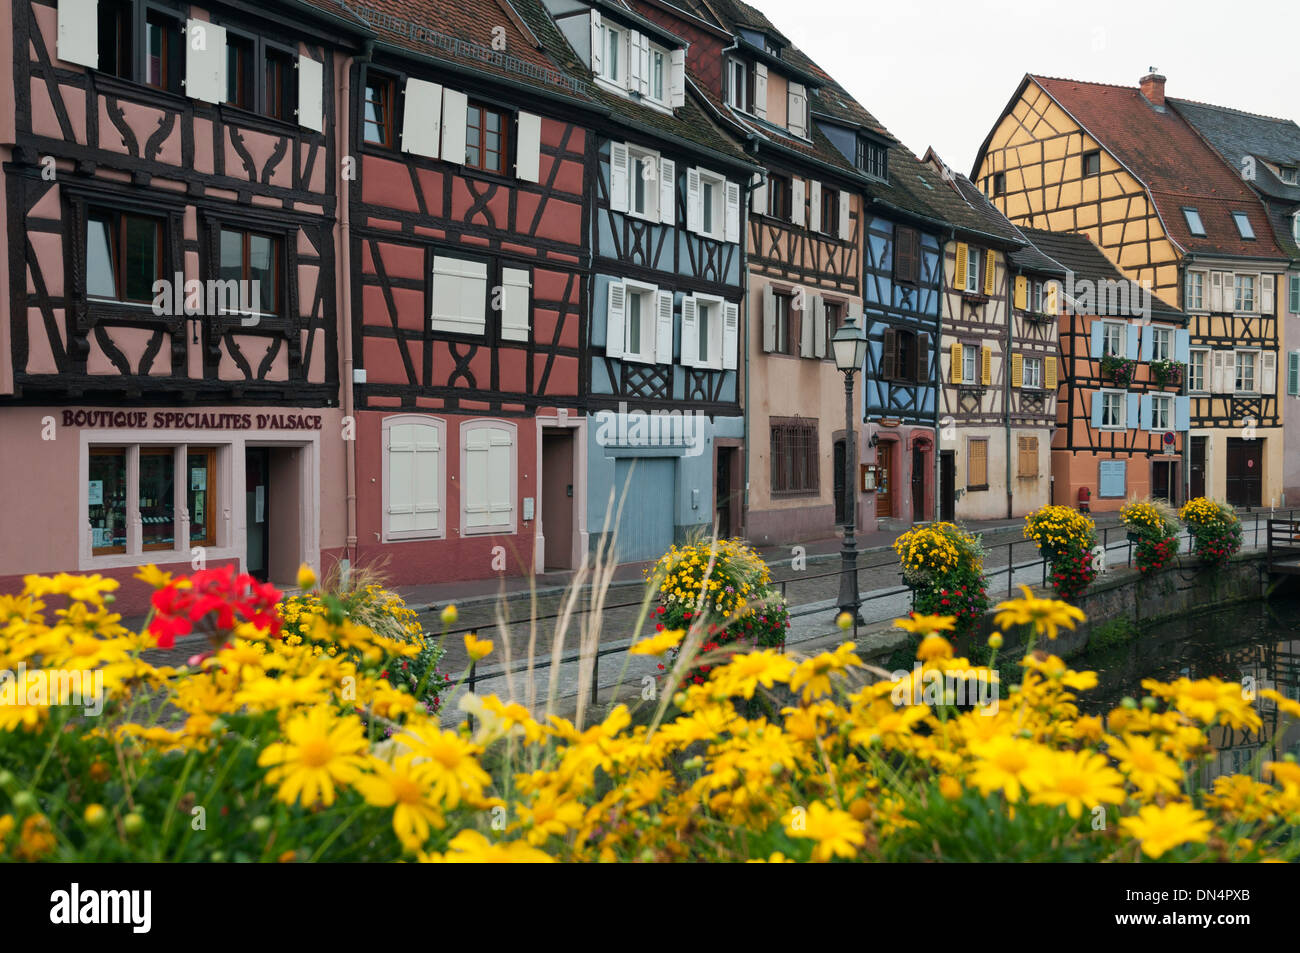 Elk213-2751 France, Alsace, Colmar, Petit Venise with half-timbered houses Stock Photo